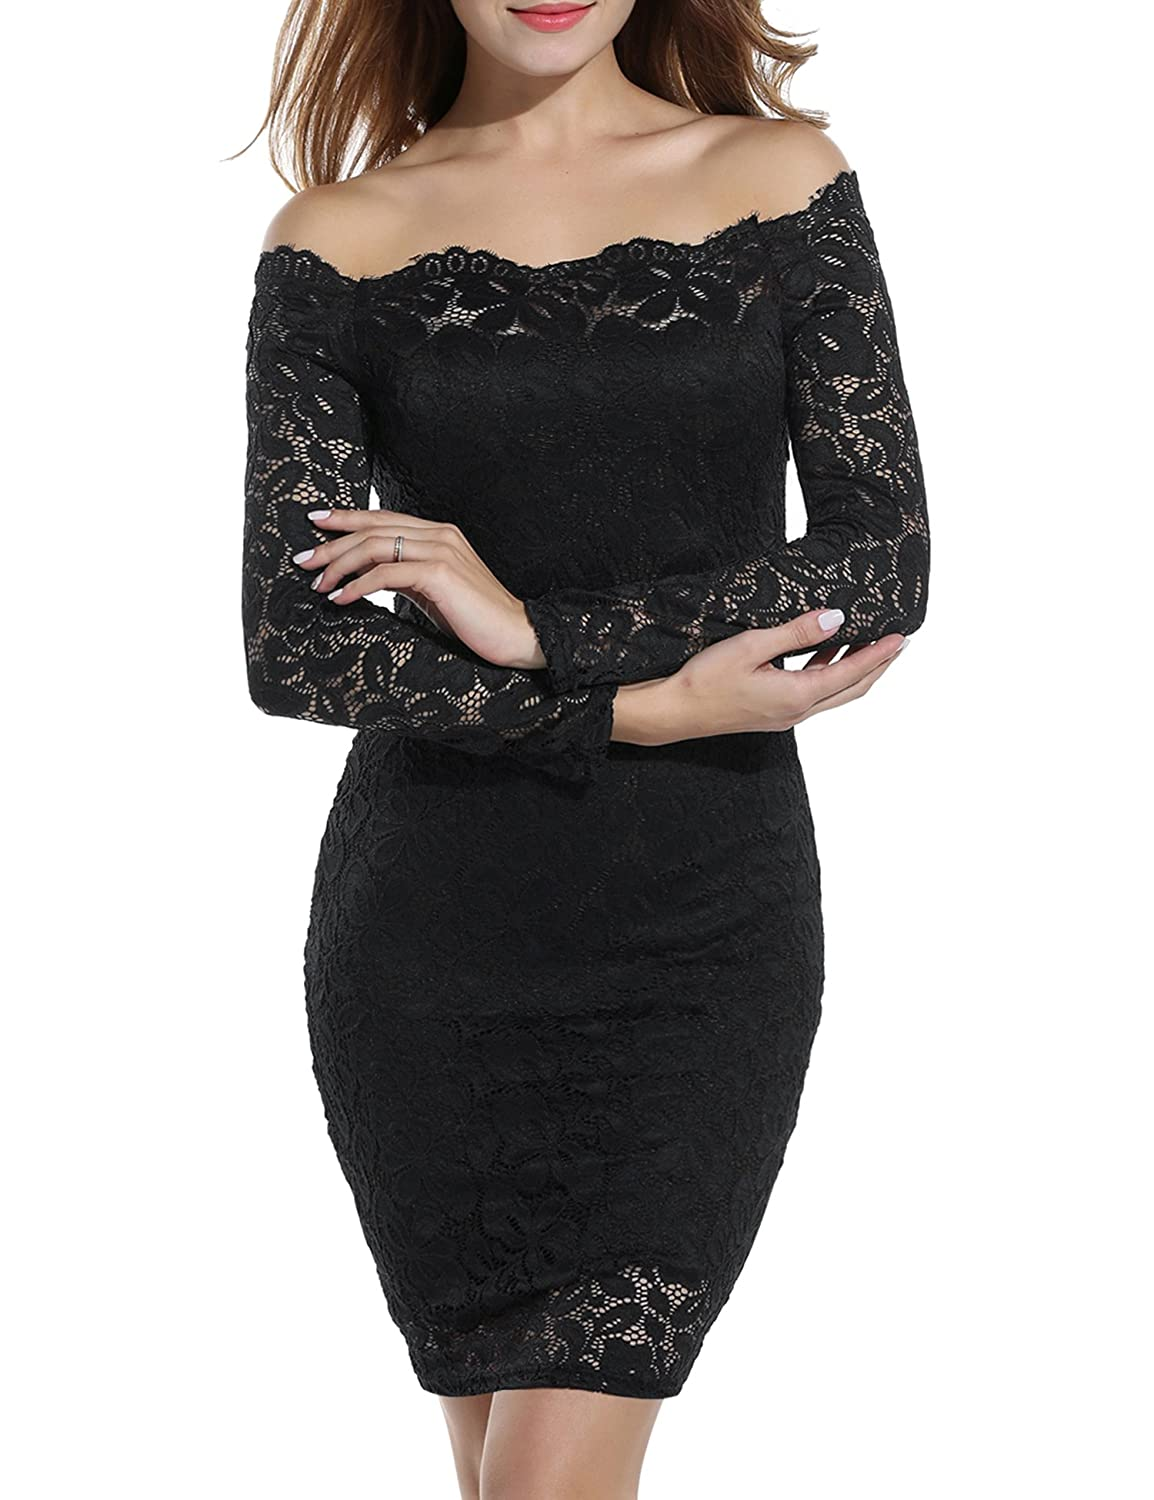 021d4c2a334b Amazon.com  ACEVOG Women s Off Shoulder Lace Dress Long Sleeve Bodycon  Cocktail Party Wedding Dresses  Clothing